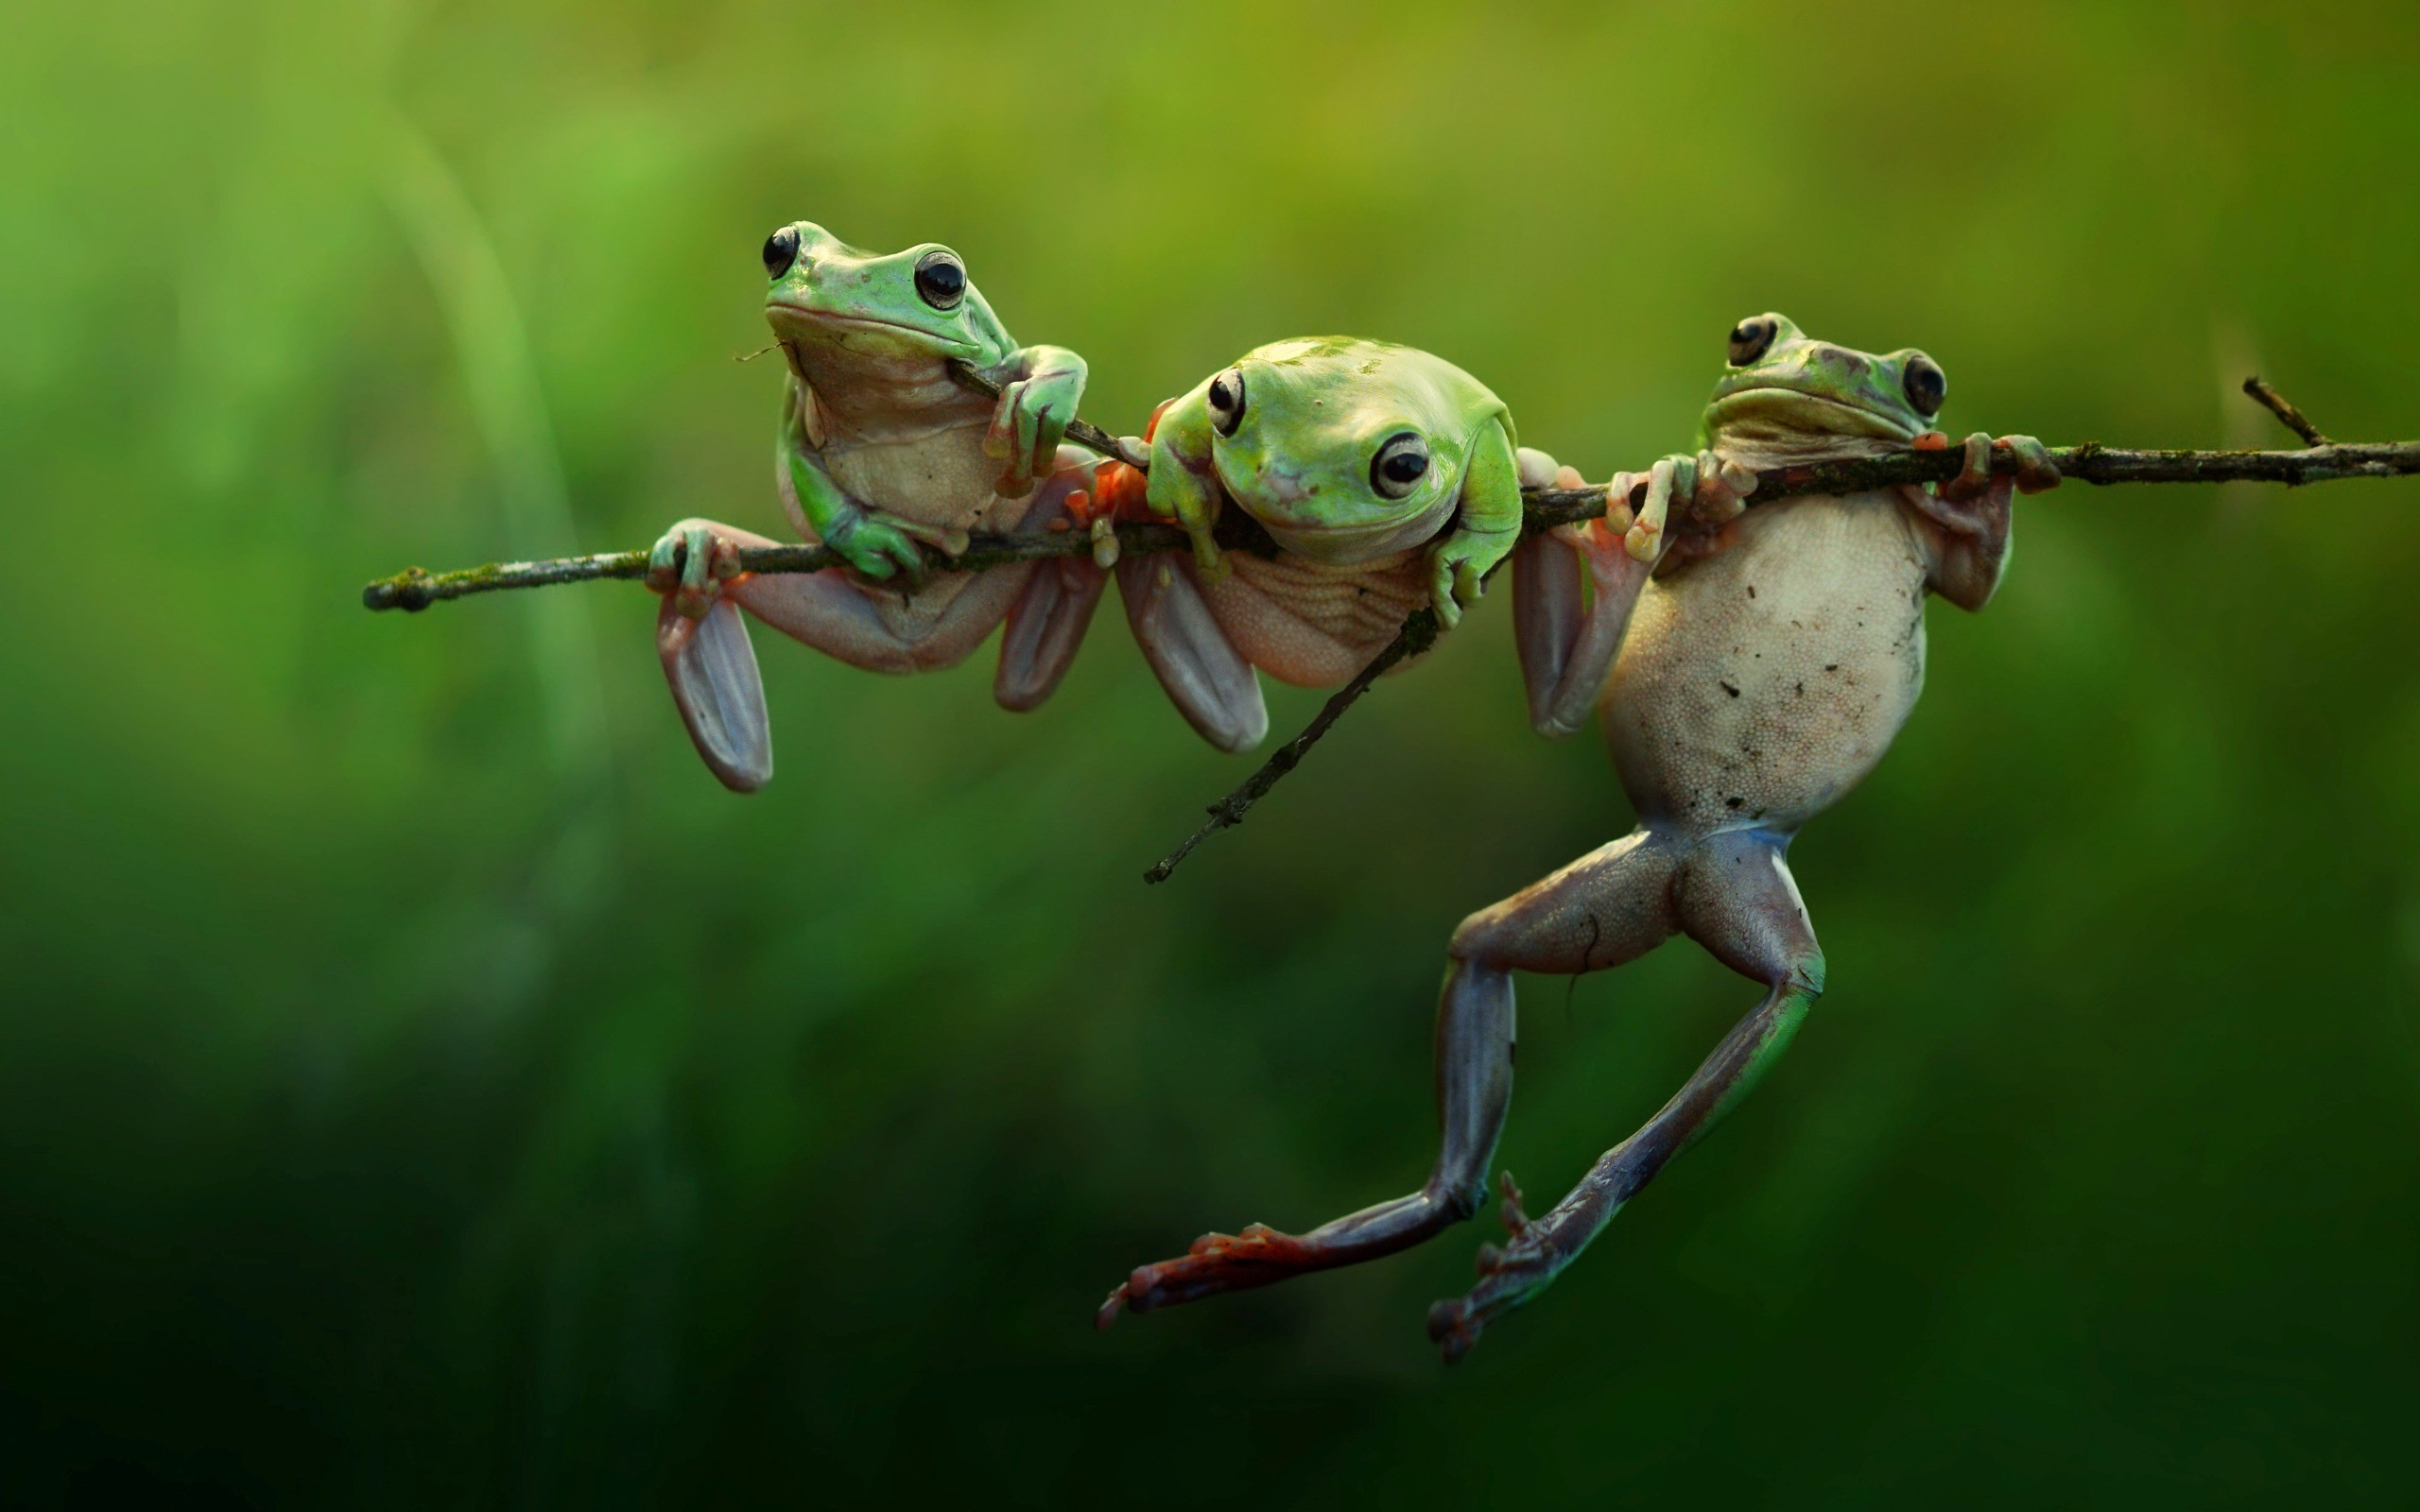 Frogs Animals Nature Amphibians wallpaper Gallery 2560x1600